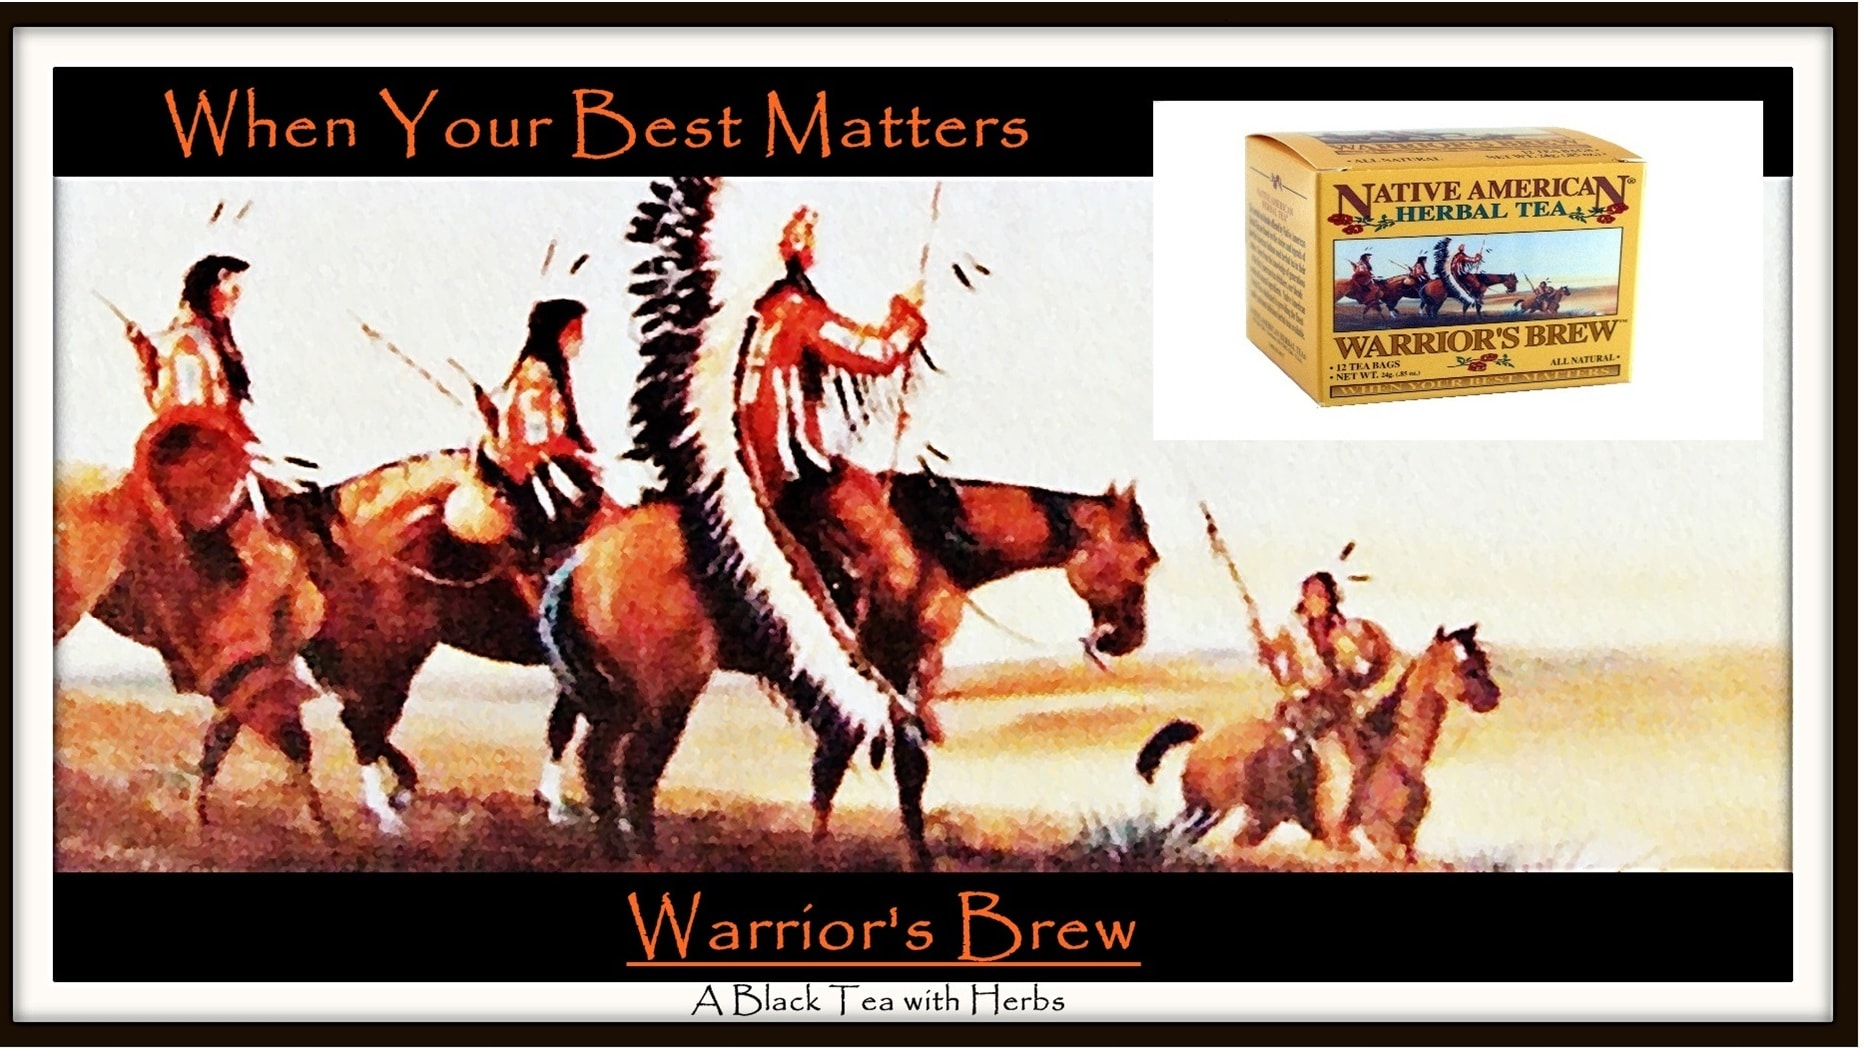 Drink Warrior's Brew for Natural Energy - Native American